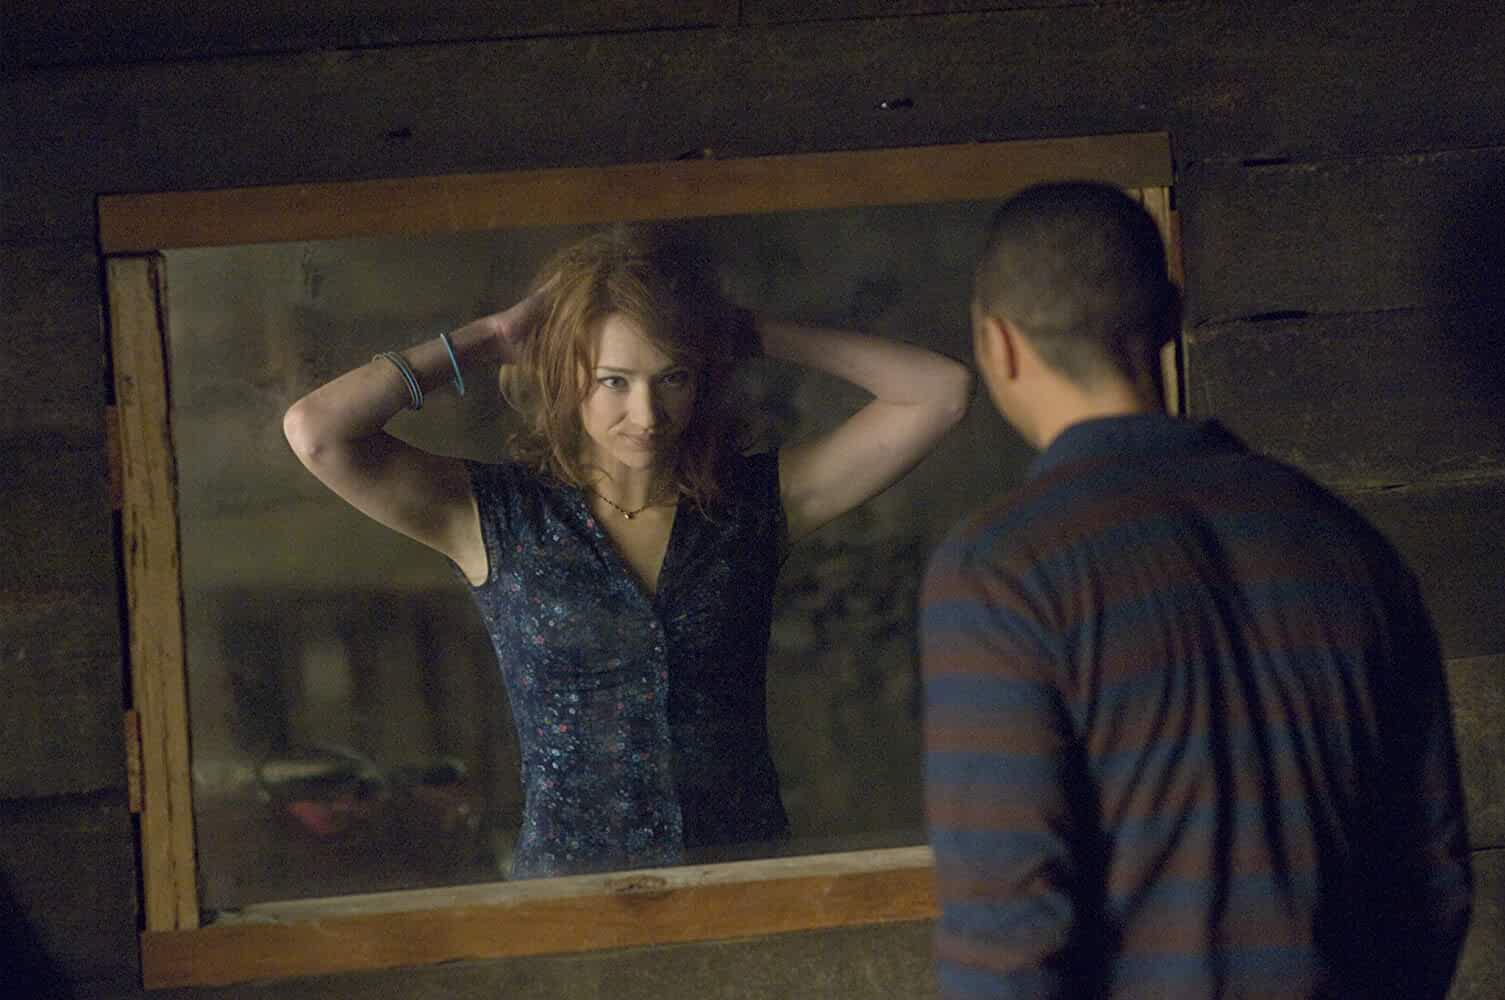 Jesse Williams and Kristen Connolly in The Cabin in the Woods (2011)